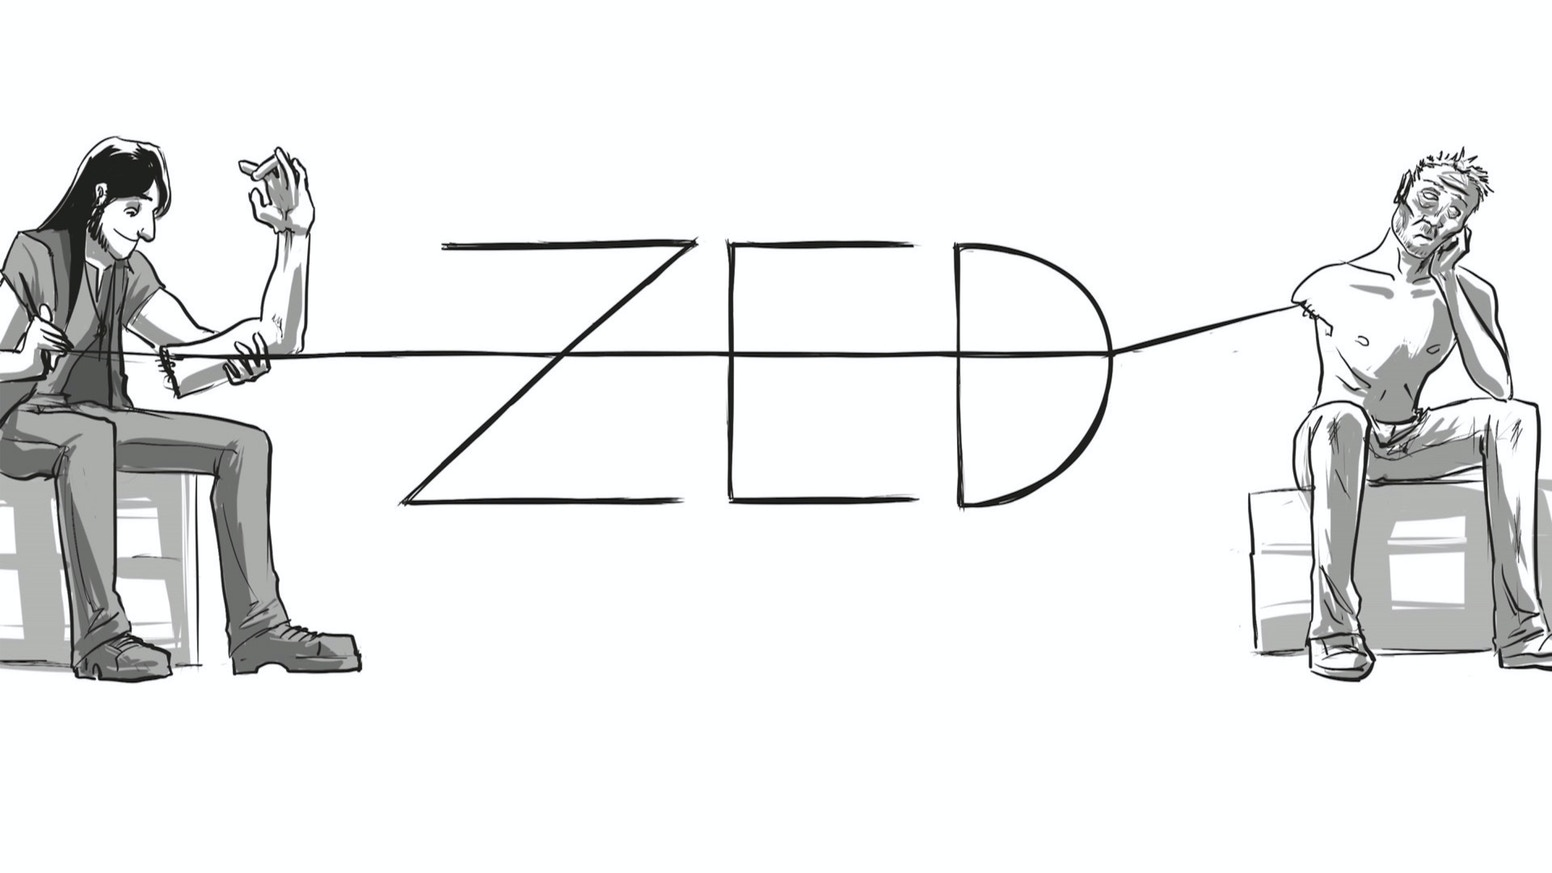 Zed Issue 1 A Buddy Roadtrip Zombie Superhero Comic By Caleb Thusat Kickstarter